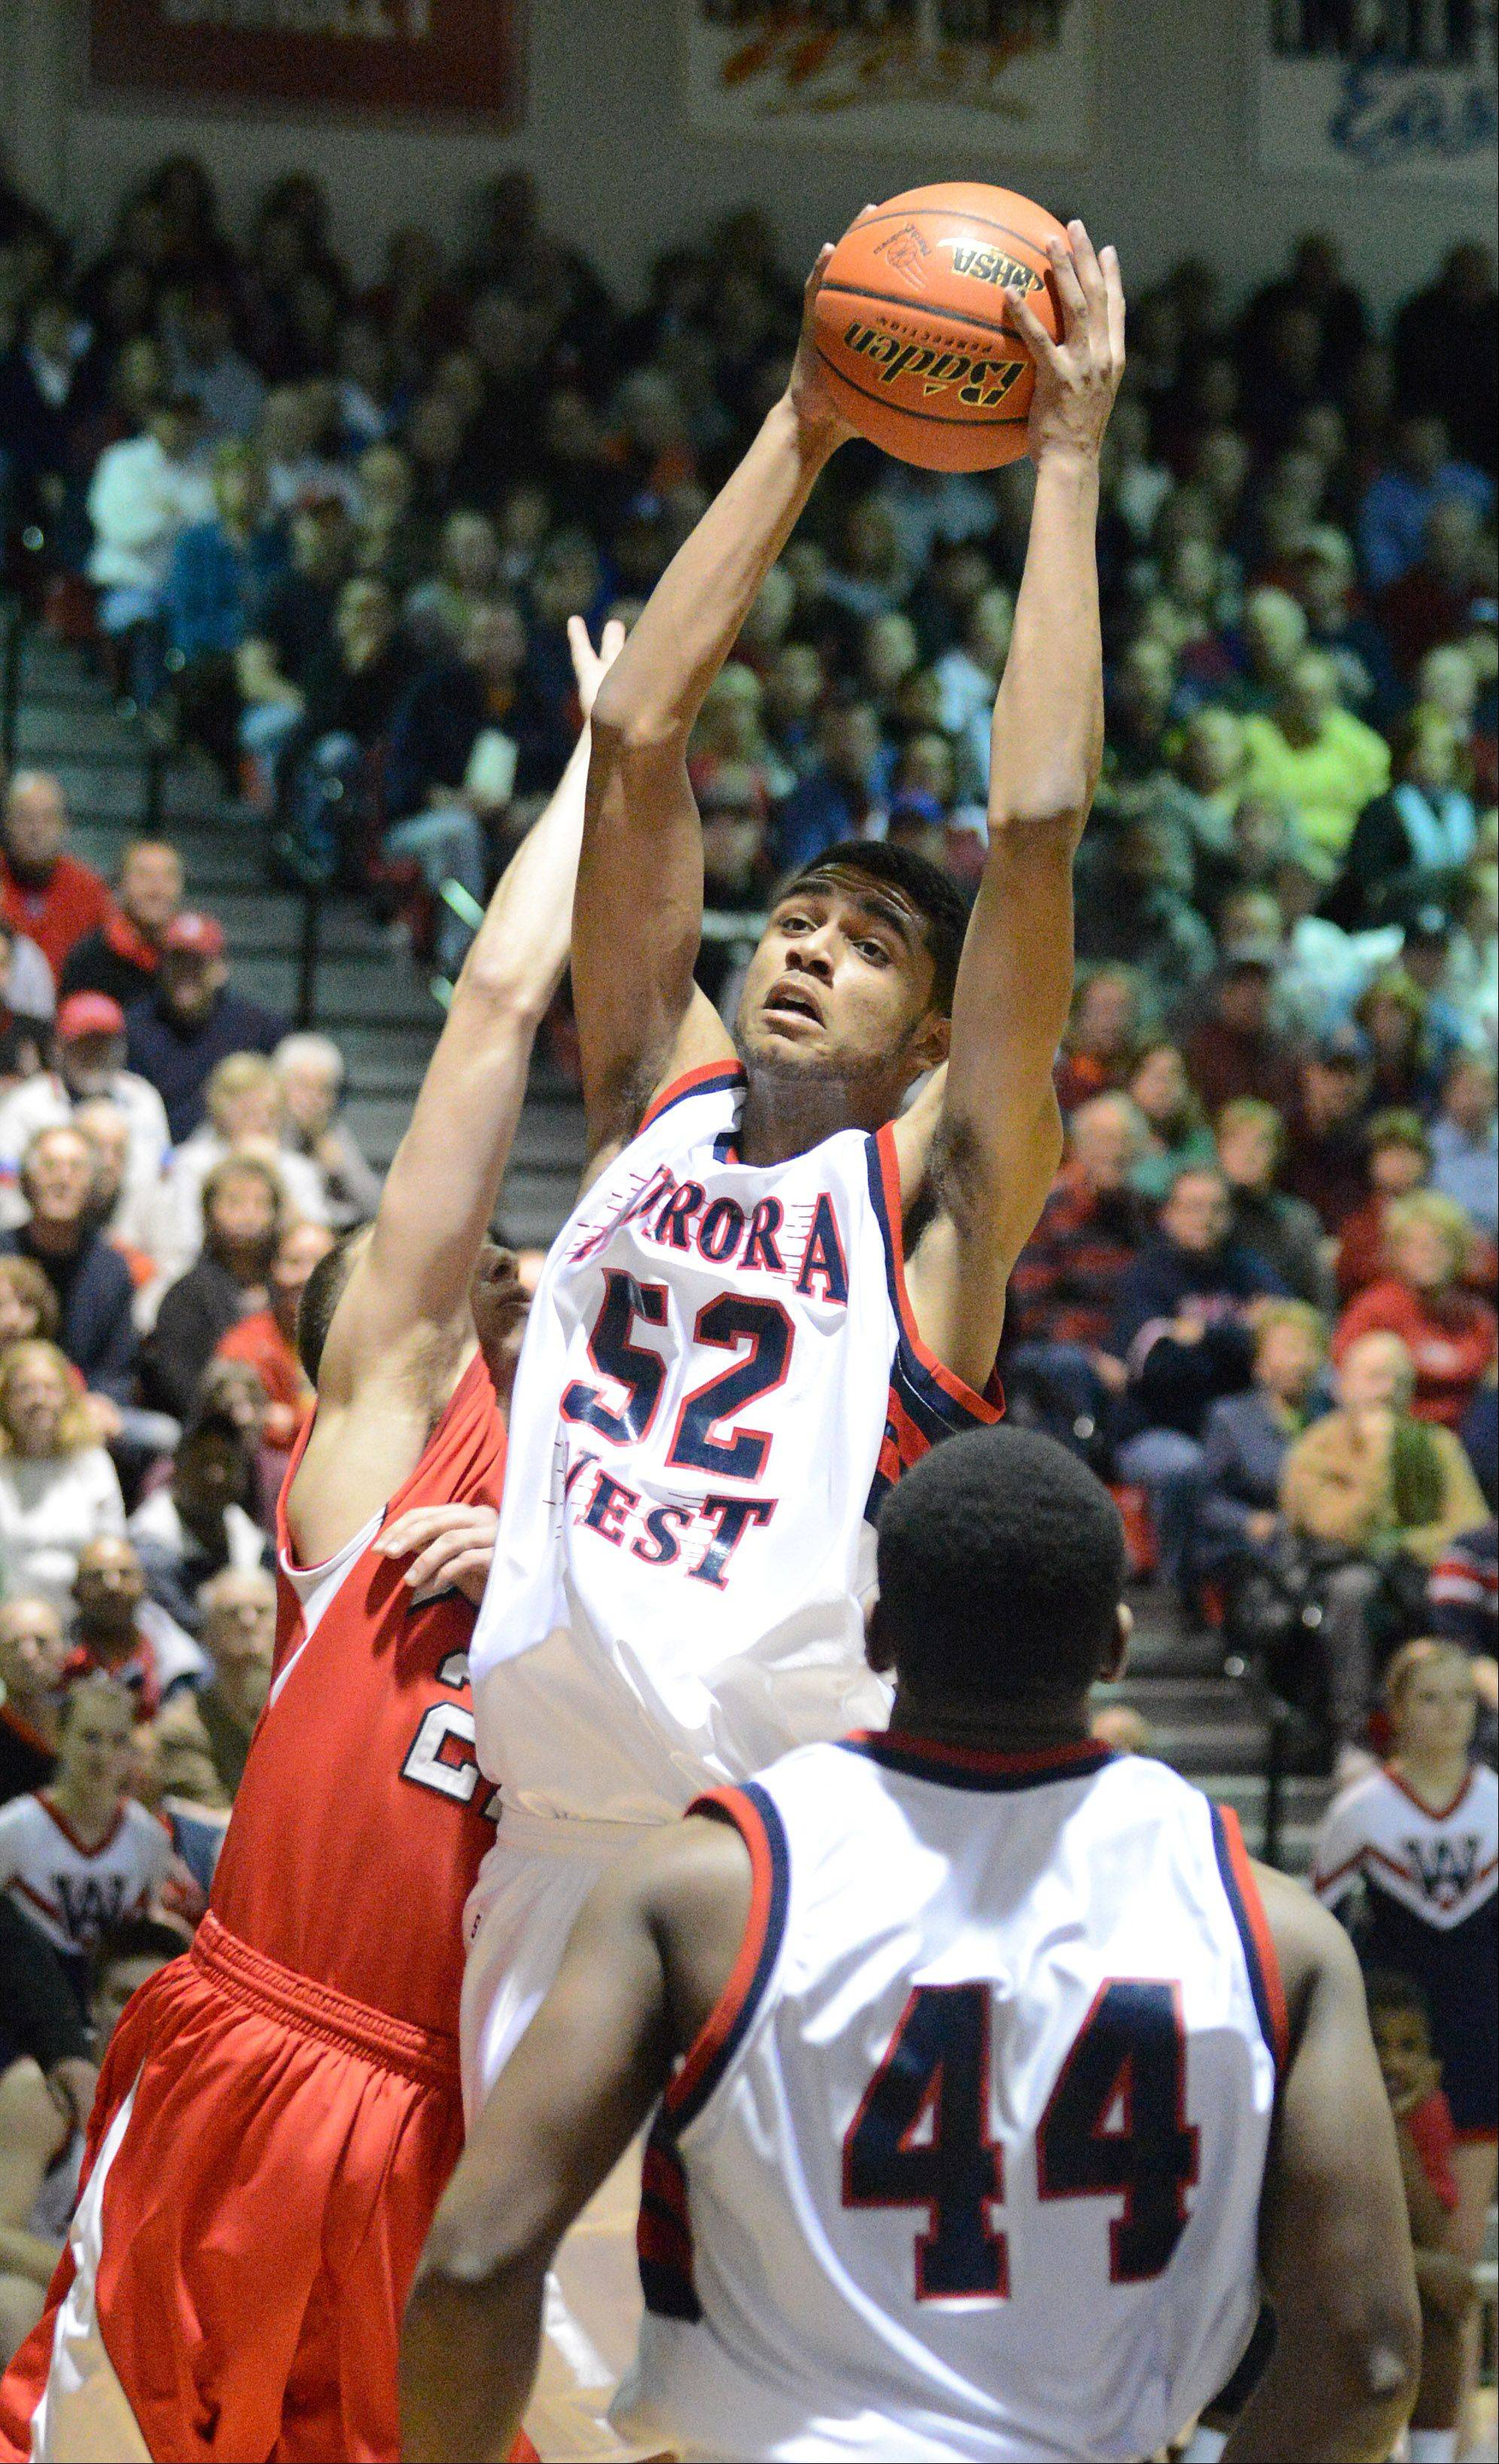 Josh McAuley of West Aurora makes a rebound.